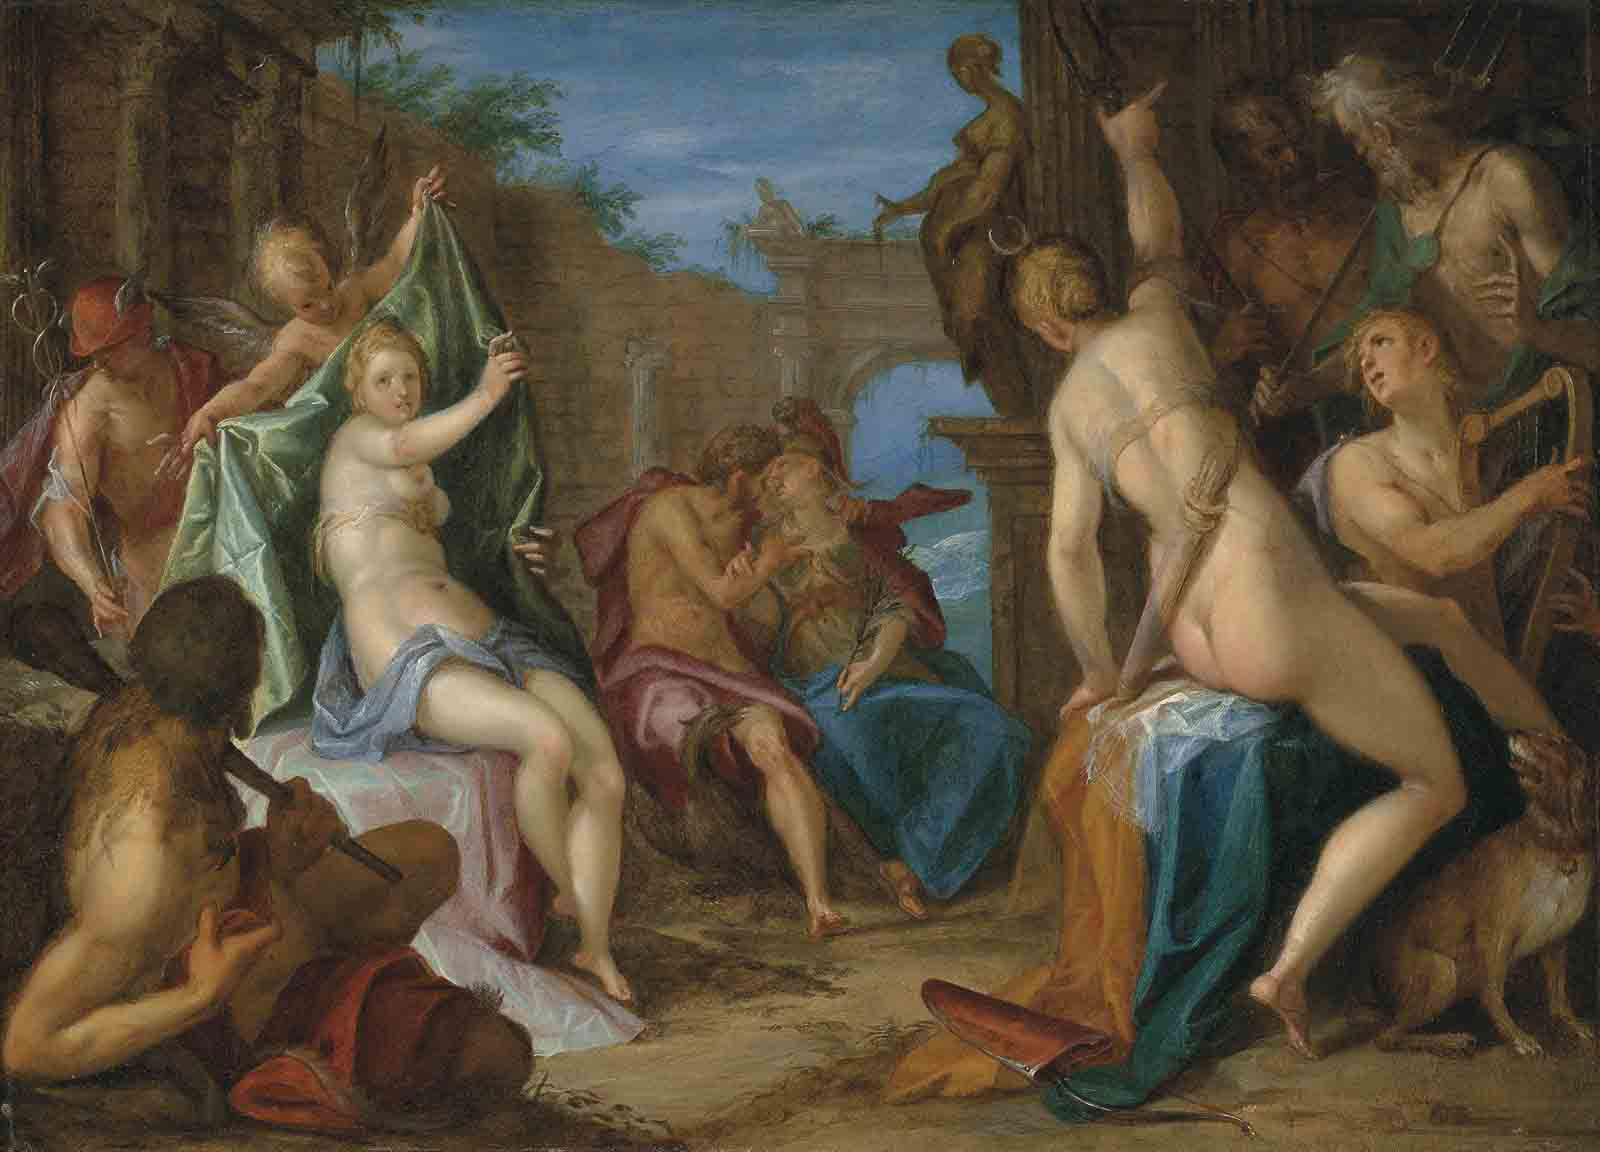 An Assembly of the Gods, with Jupiter embracing Minerva, Venus confronting Diana observed by Hercules, Mercury, Cupid and Apollo, and Neptune and Hades conversing, in classical ruins